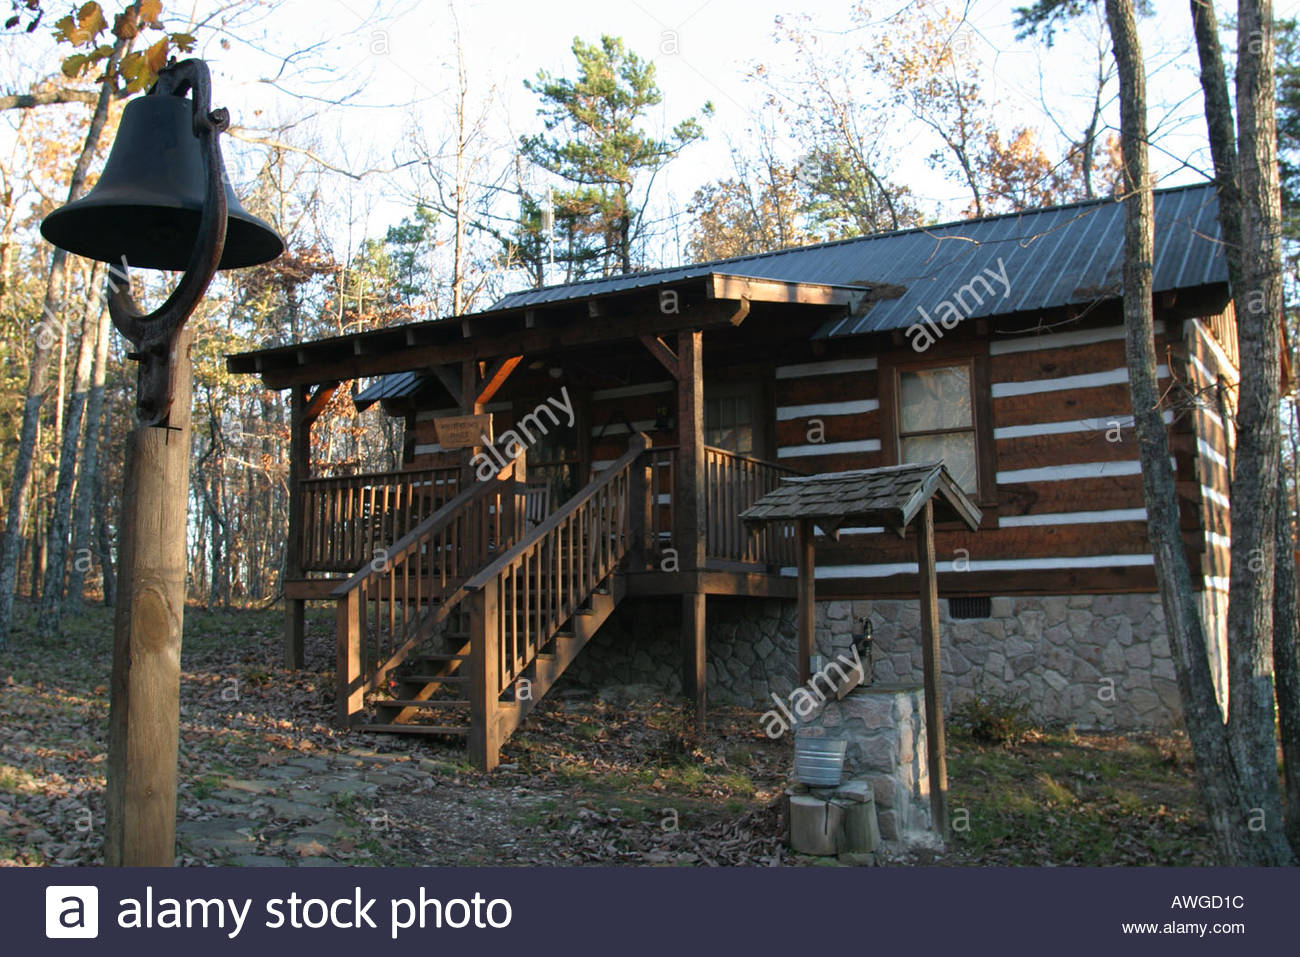 in frame x photo of beautiful a rentals alabama rock cloudmont cabin resort alpine mentone couple mountain cabins rental lookout att